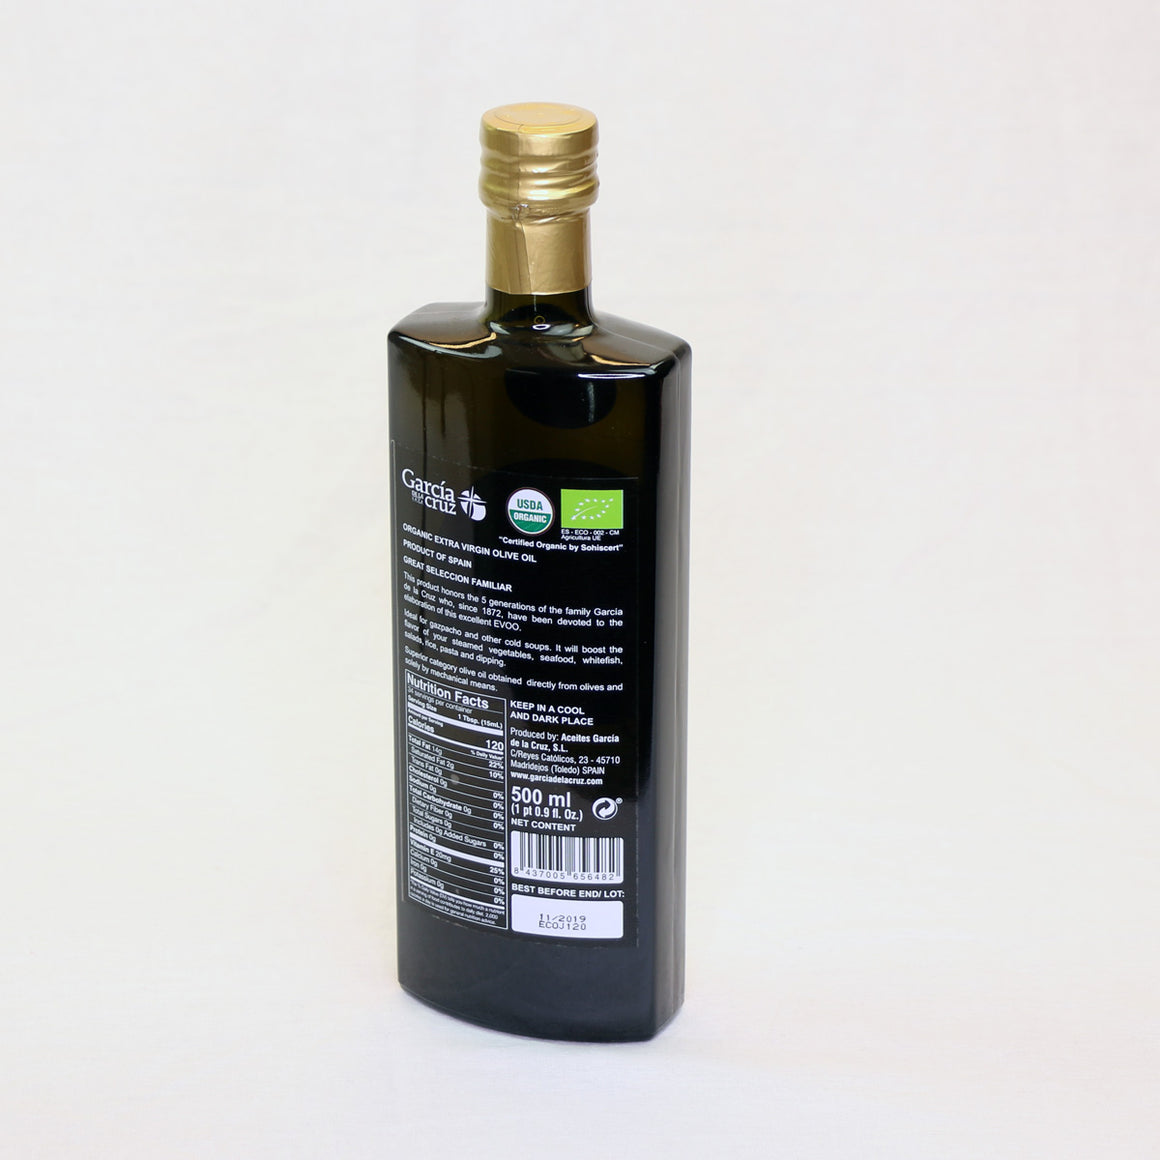 Coupage of extra virgin olive oil 5 Generations Garcia de la Cruz  ,500 ML